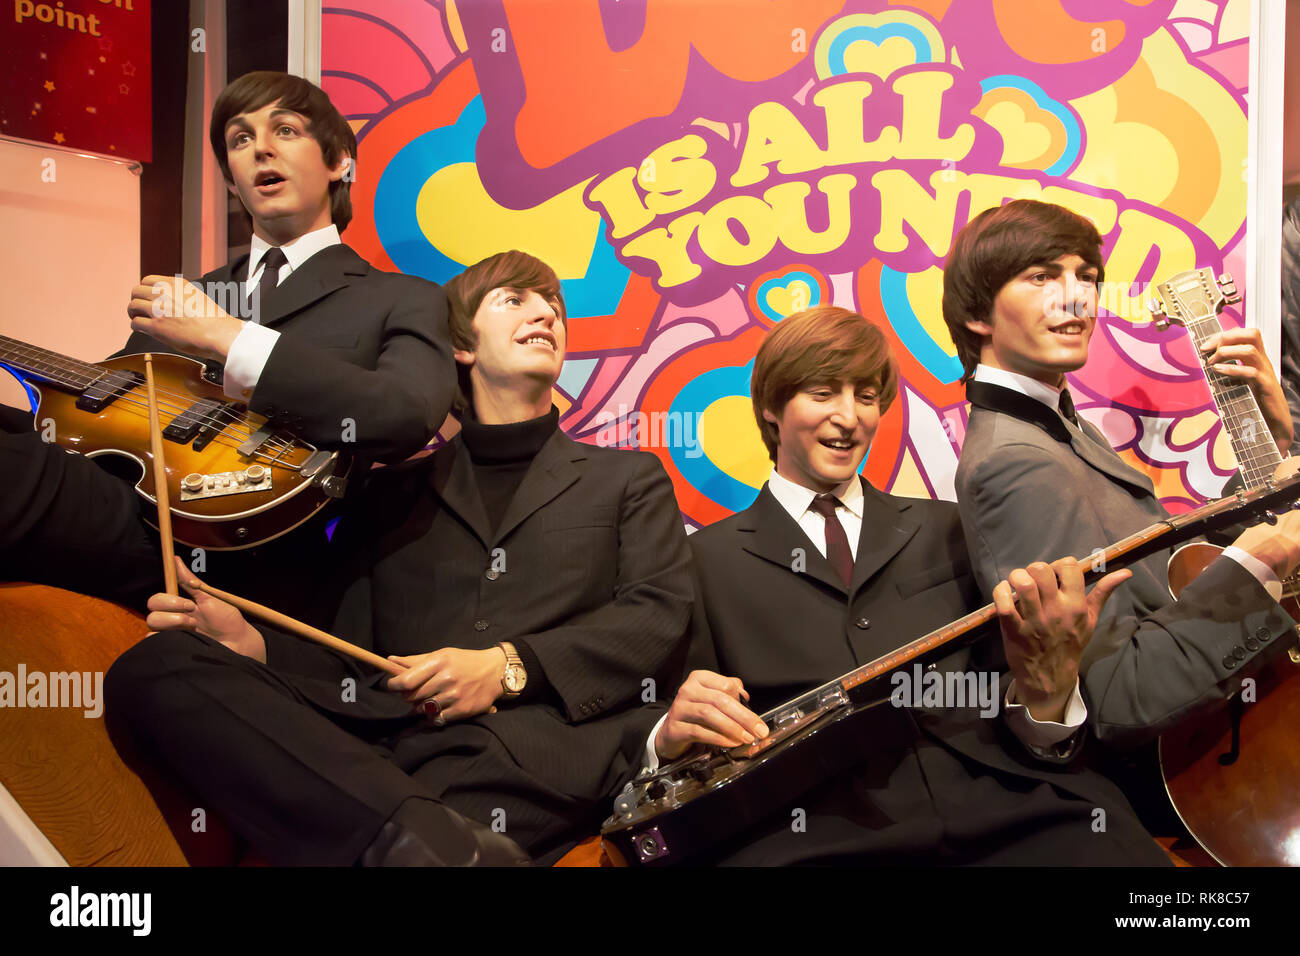 The Beatles in Madame Tussauds of London - Stock Image